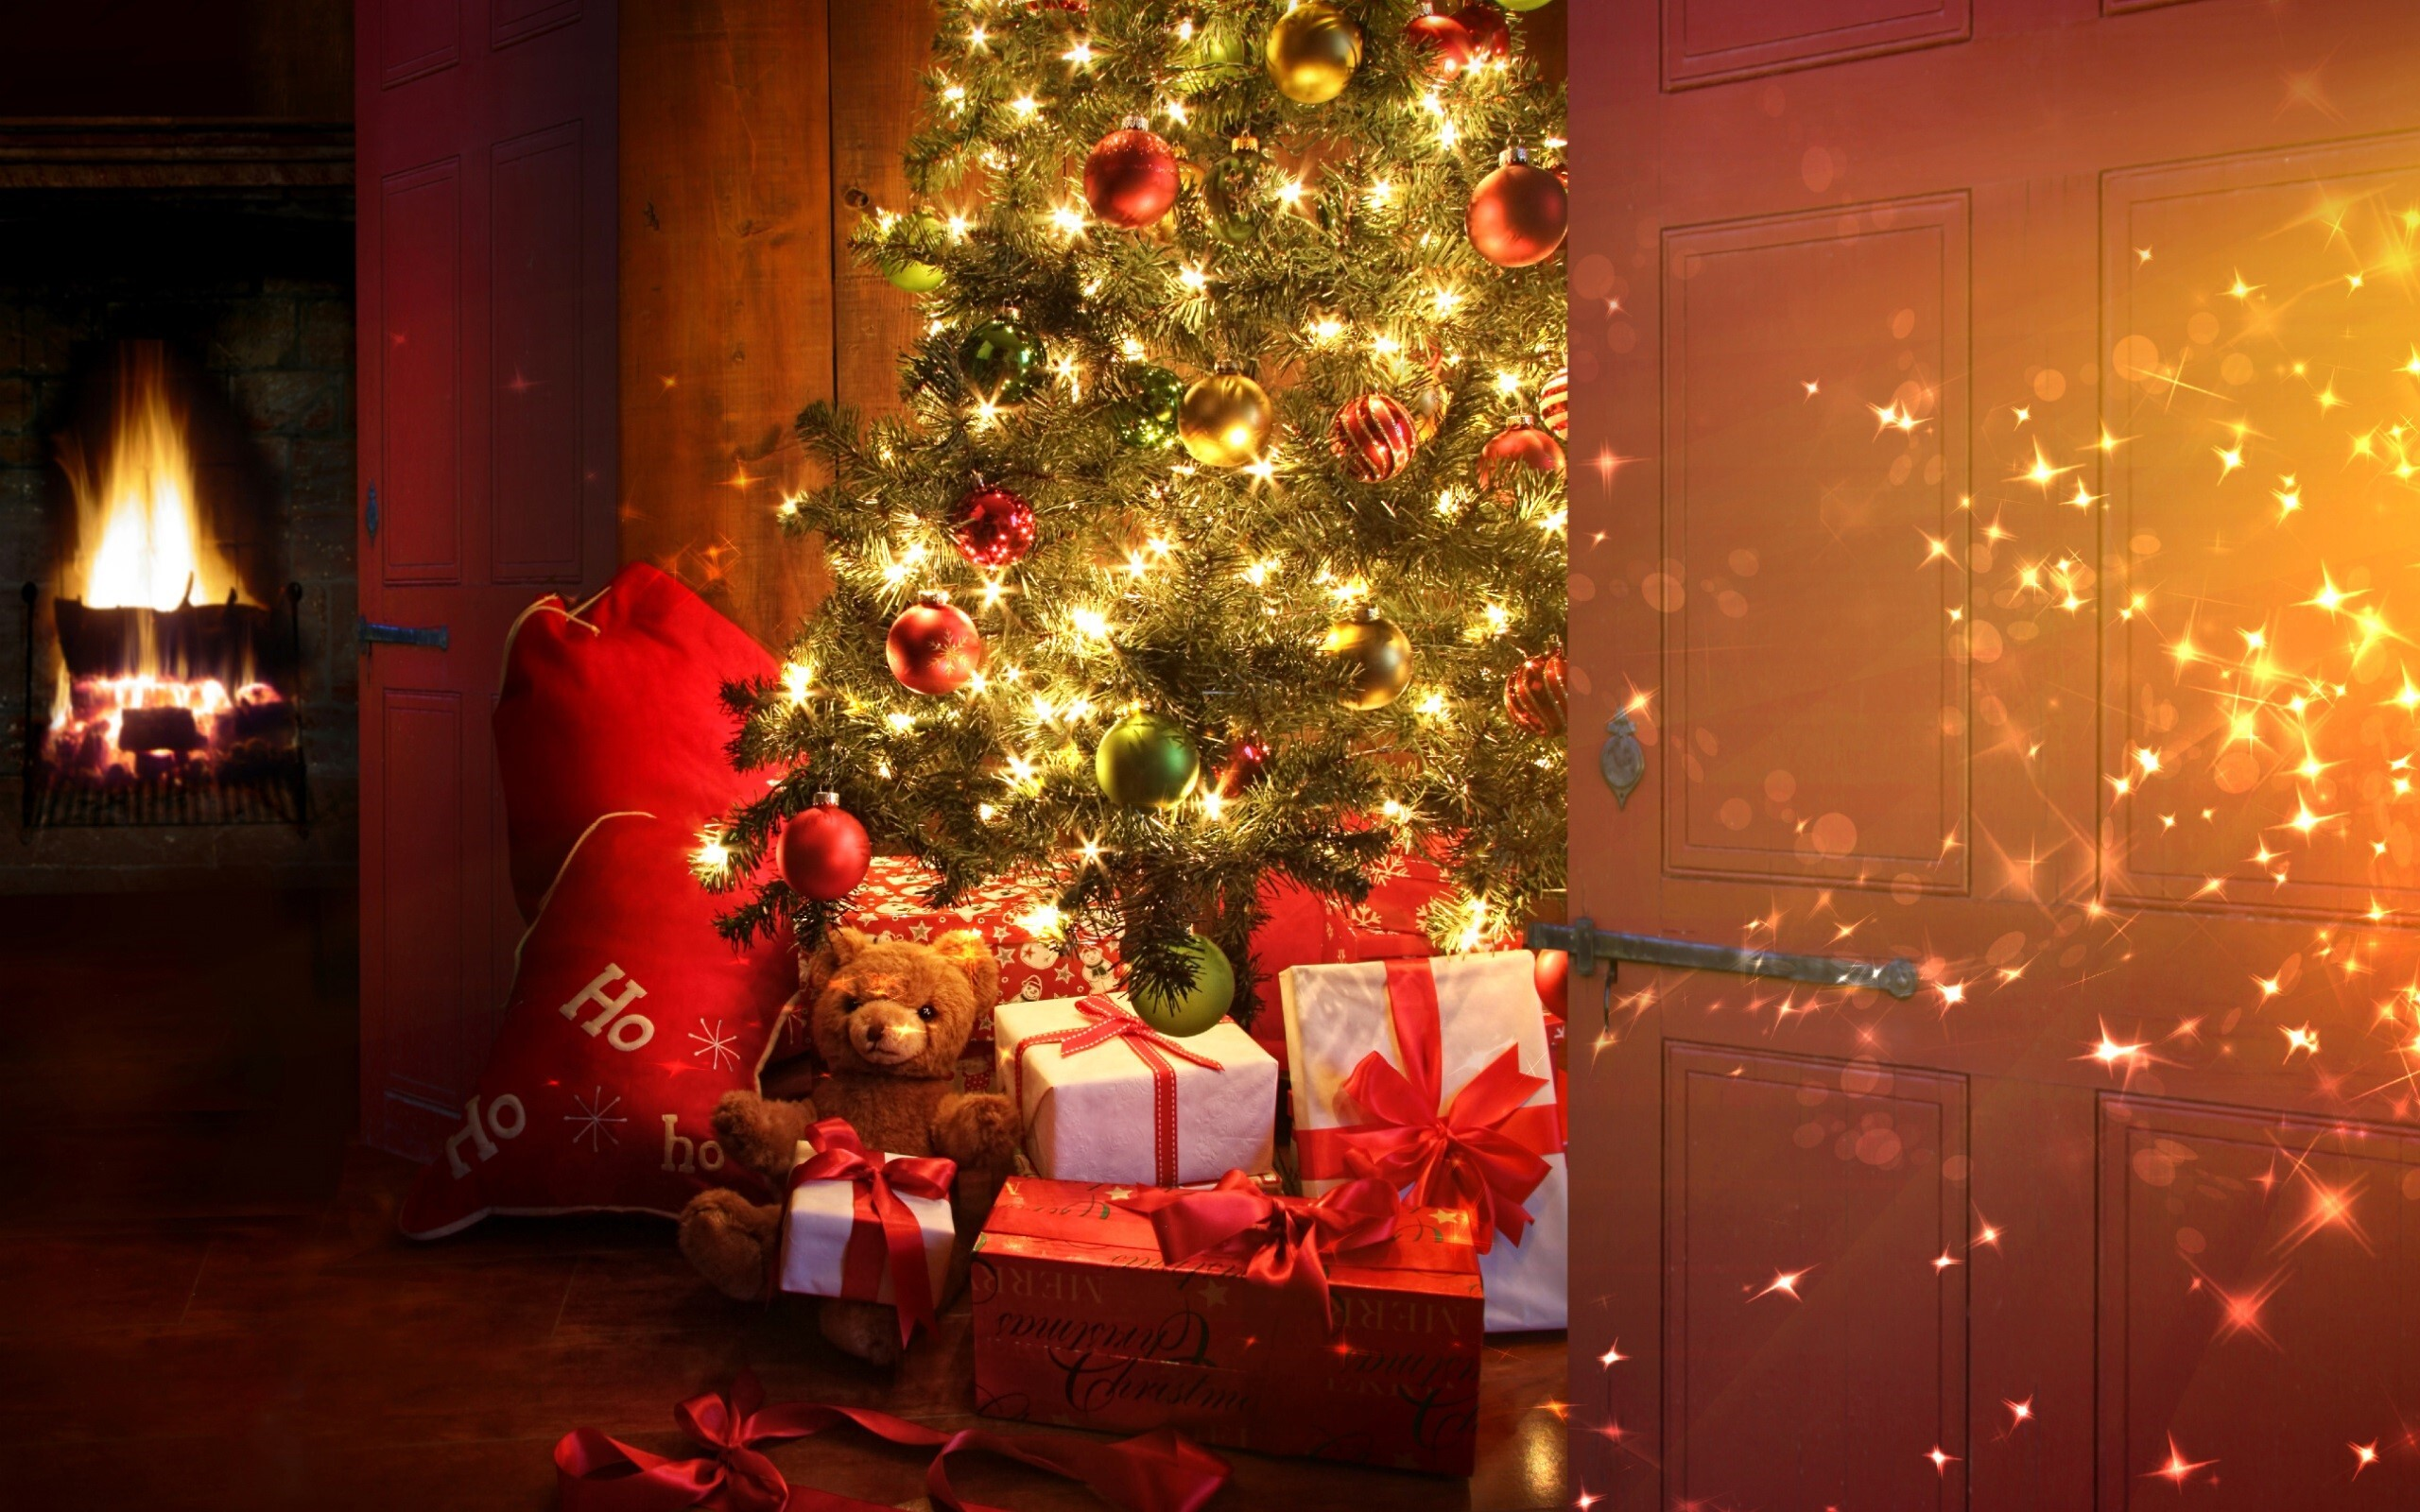 amazing dream wallpapers of christmas | hd wallpapers